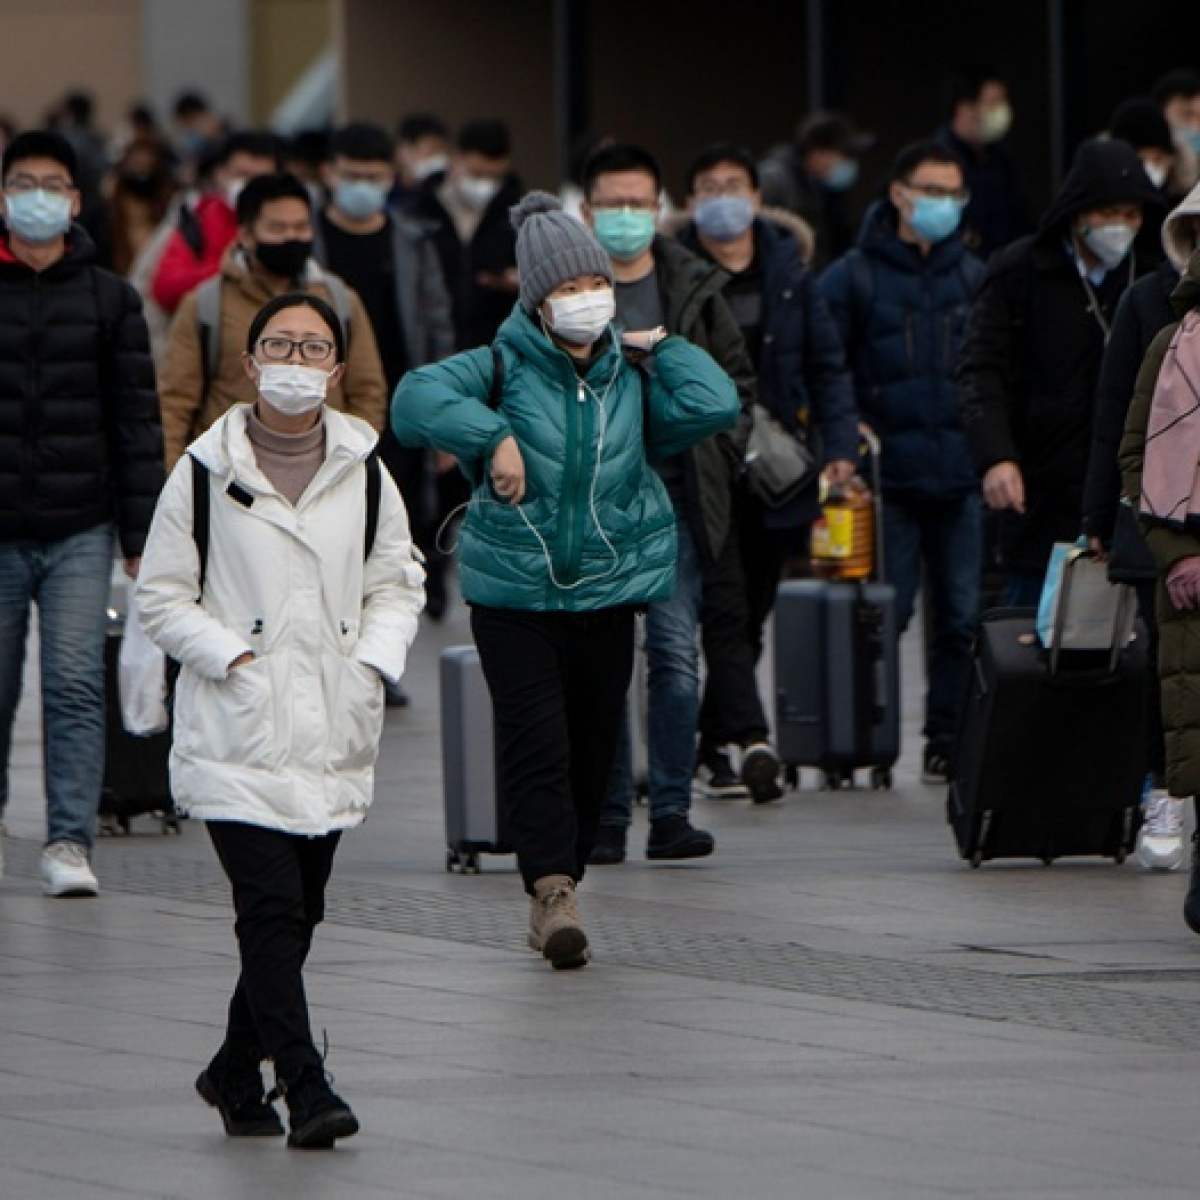 Coronavirus death toll soars to 304 in China, confirmed cases surge to nearly 14,300